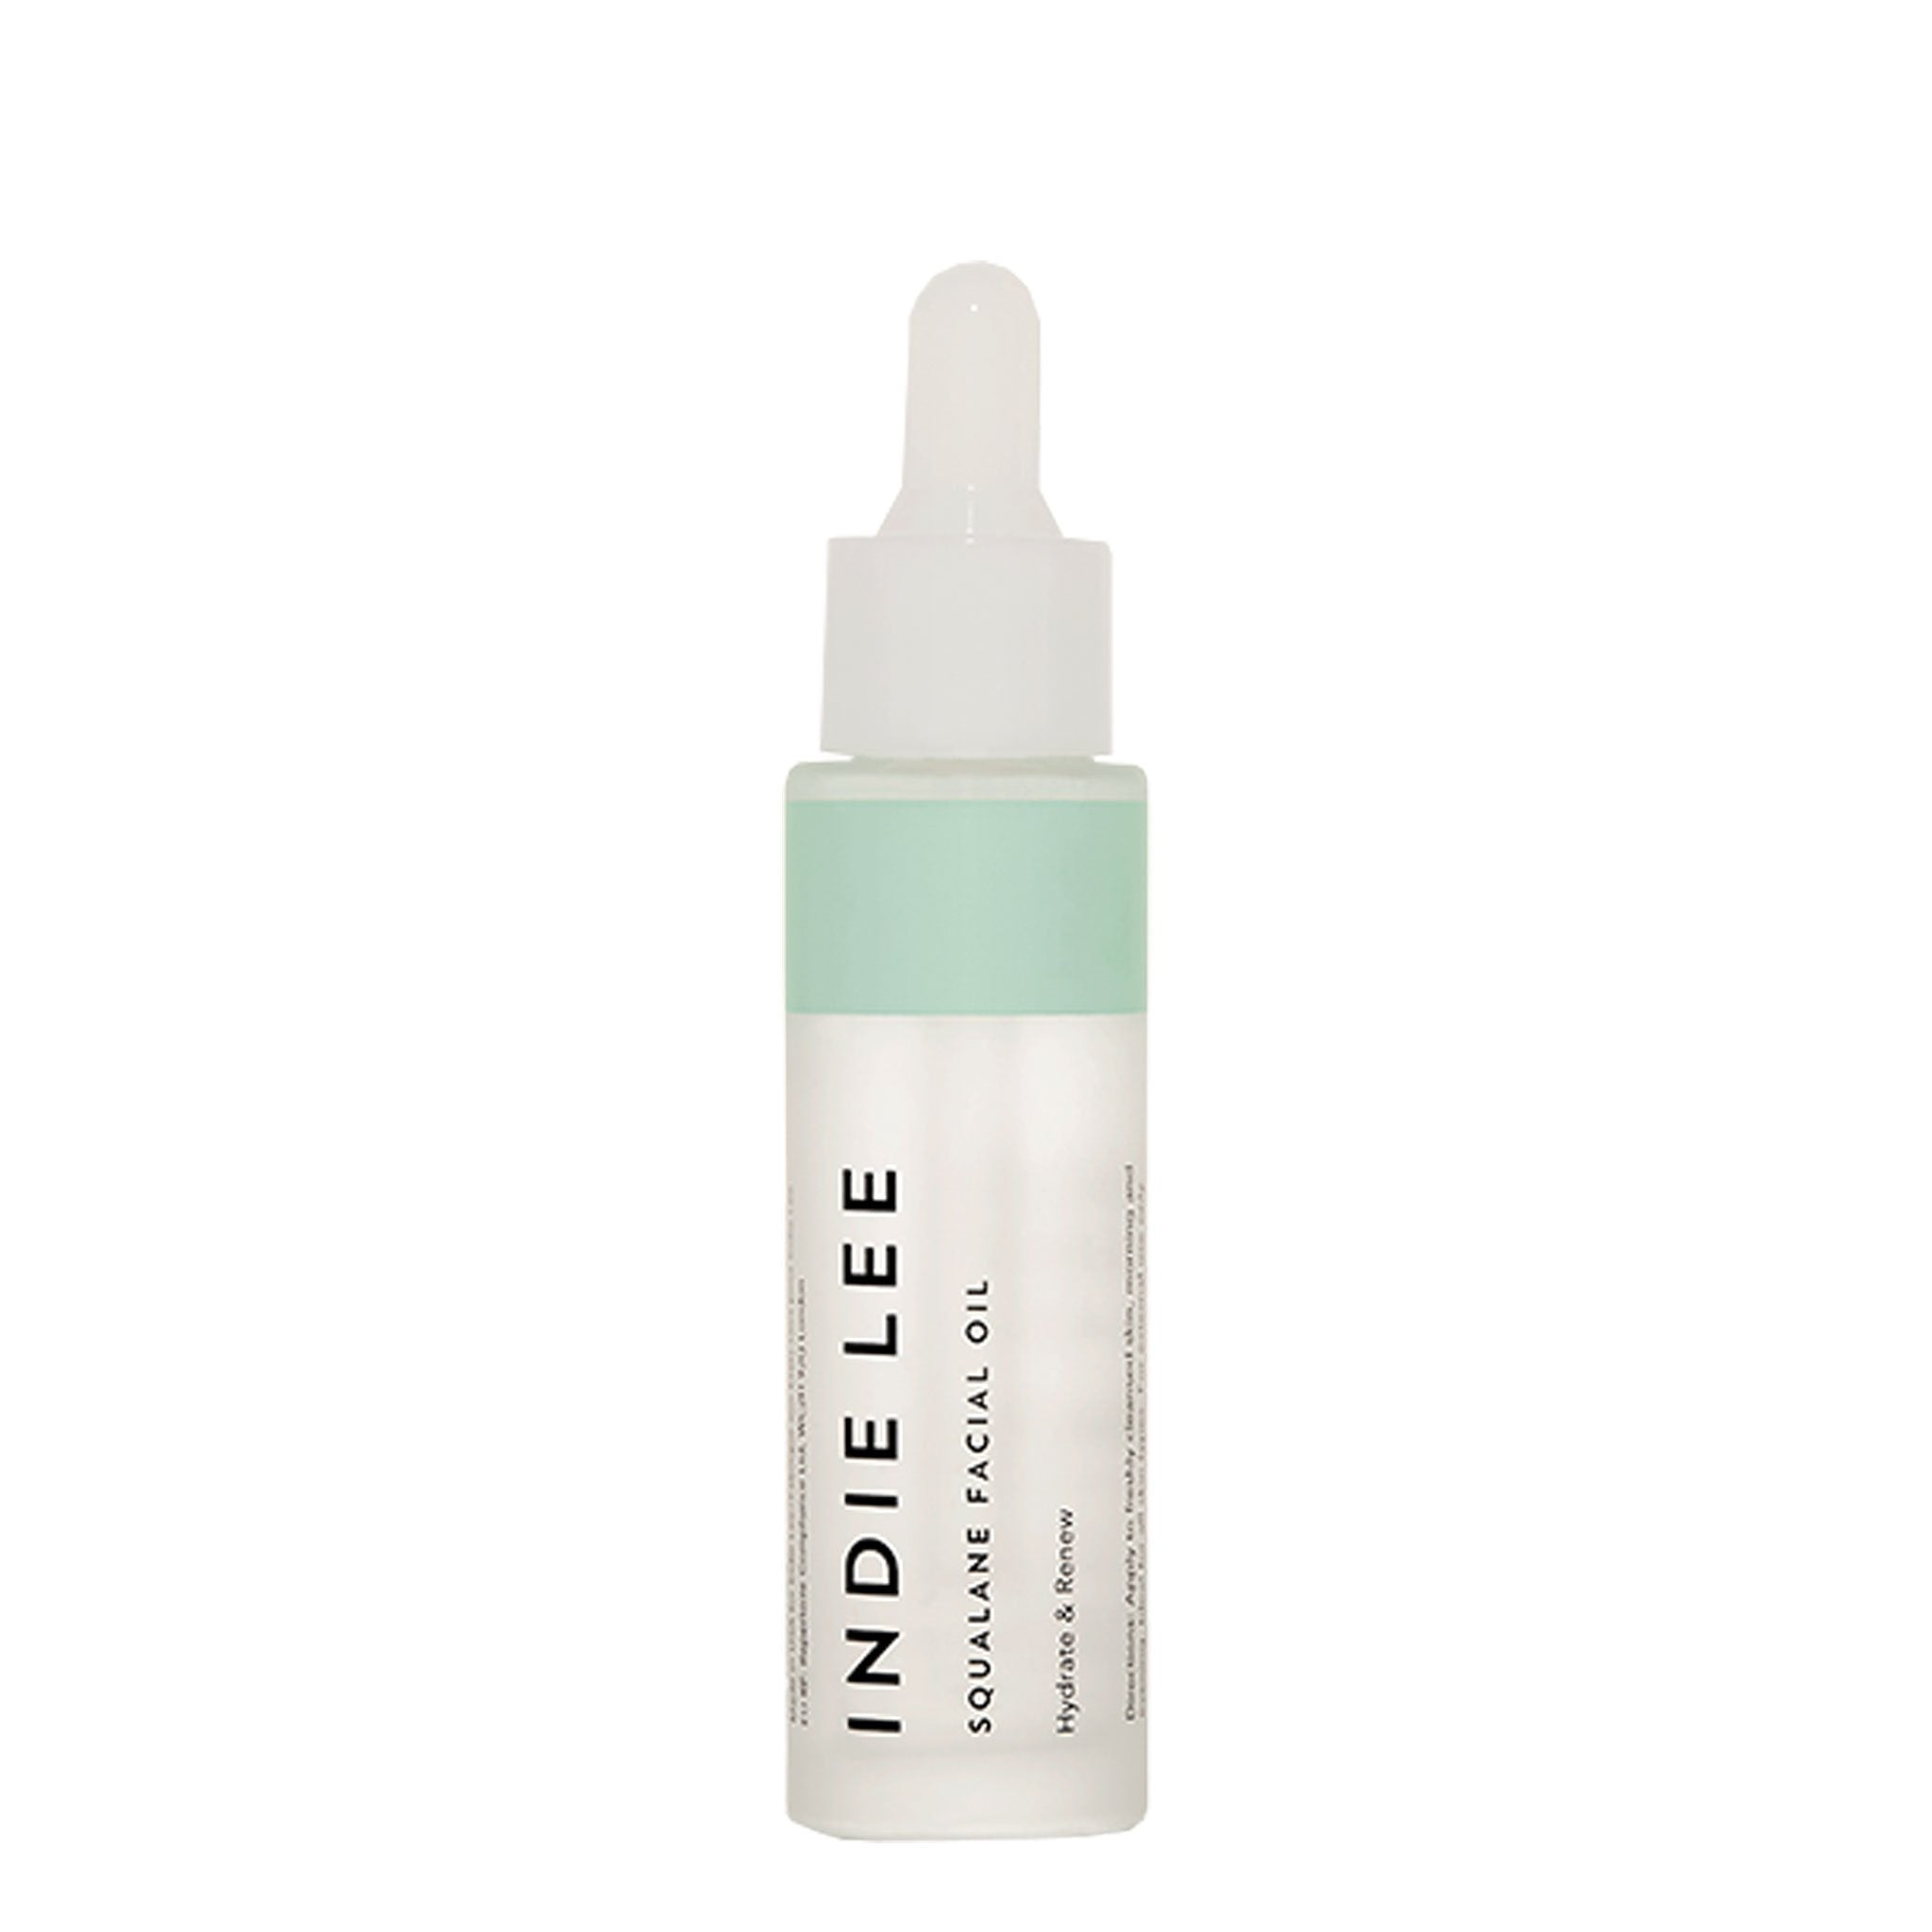 Indie Lee - Squalane Facial Oil